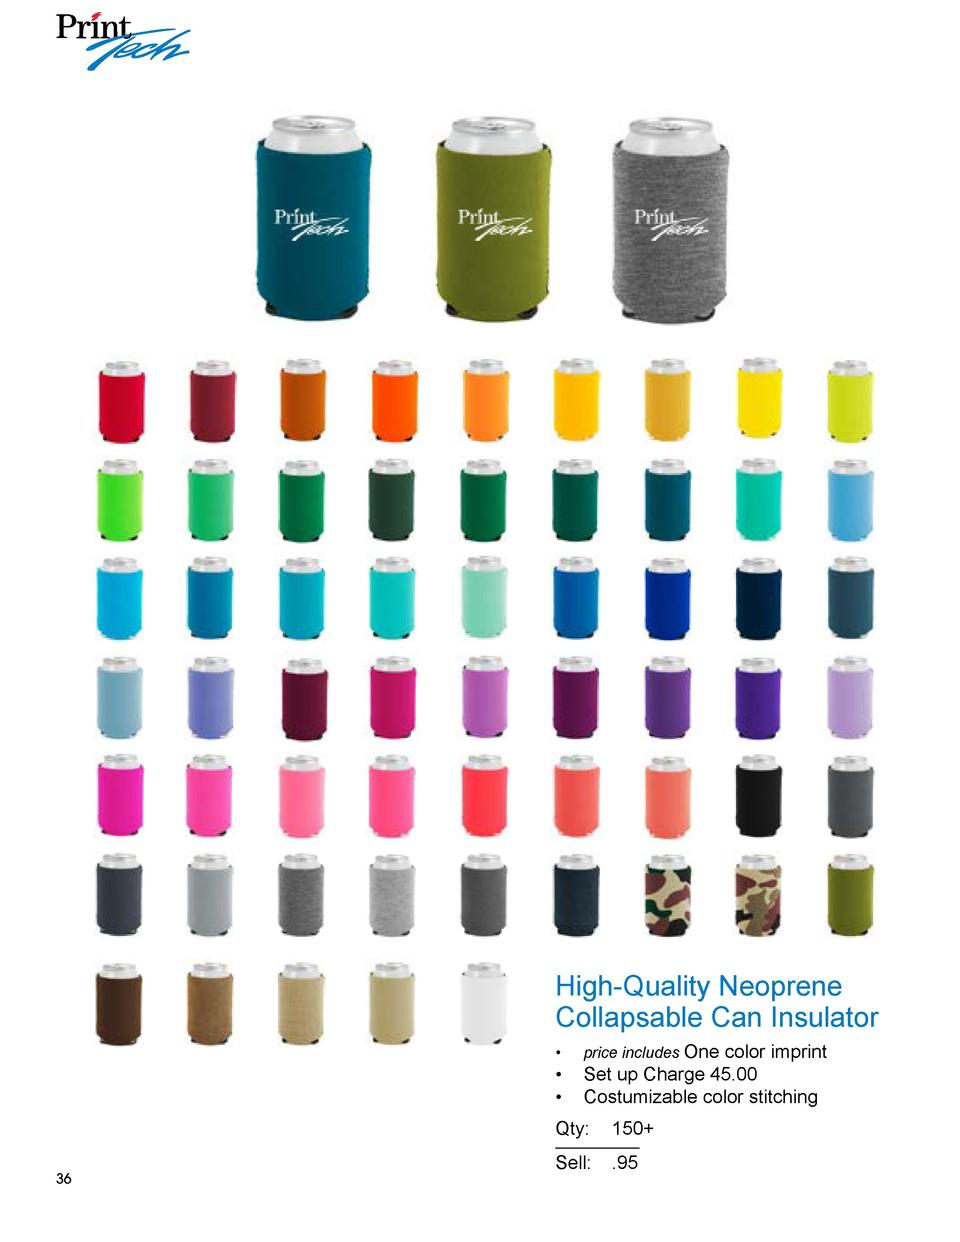 High-Quality Neoprene Collapsable Can Insulator color imprint      Set up Charge 45.00      Costumizable color stitching  ...